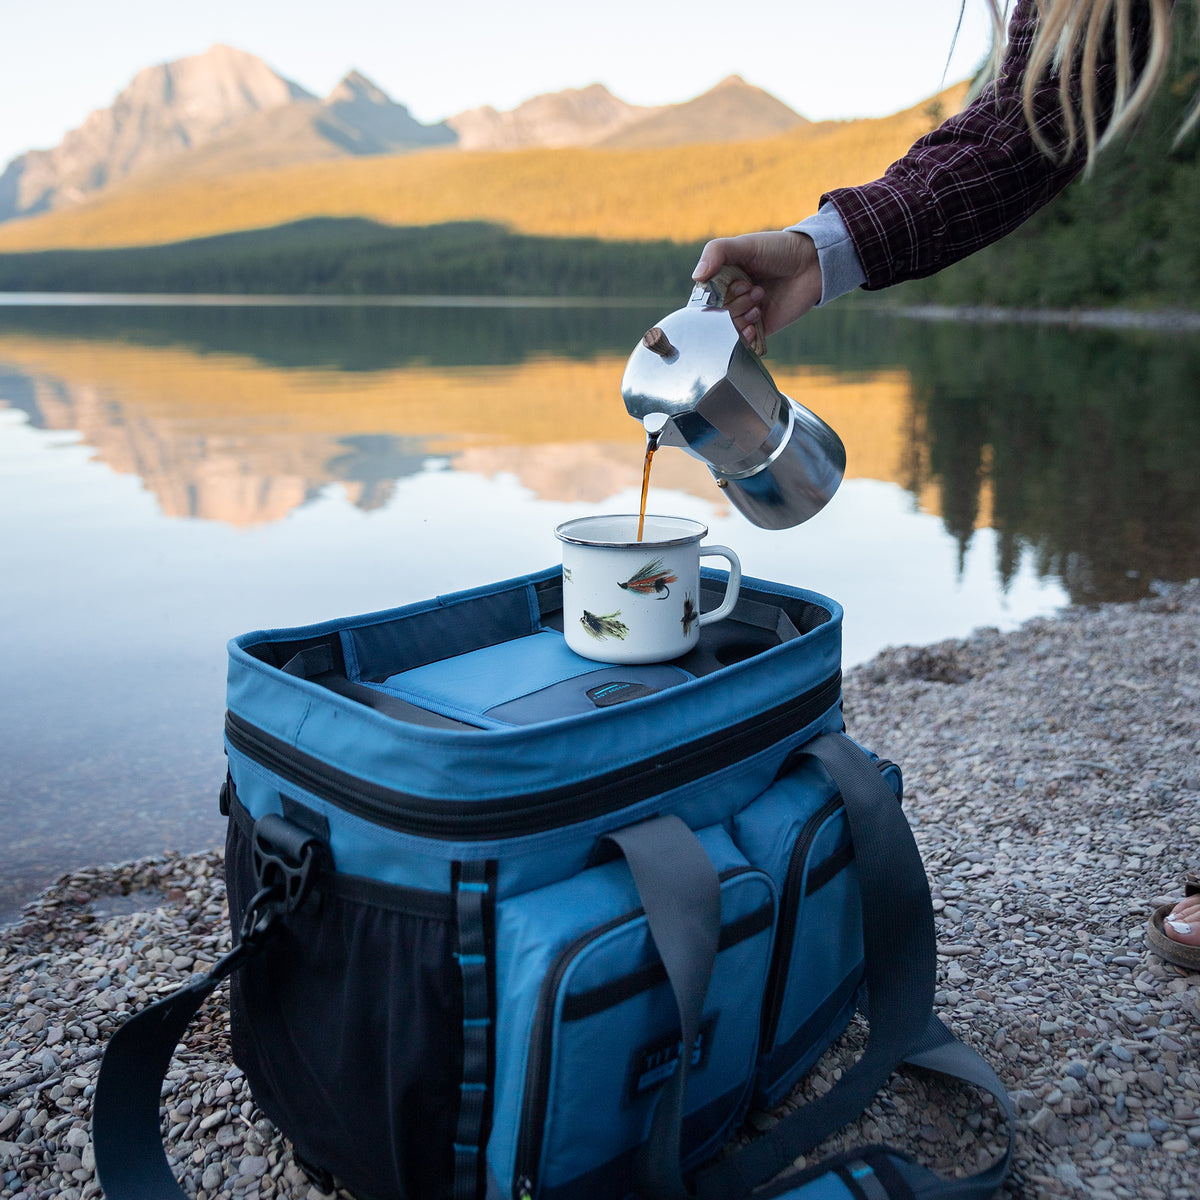 Titan Guide Series™ 36 Can Cooler - Lifestyle, pouring some coffee on top of the cooler